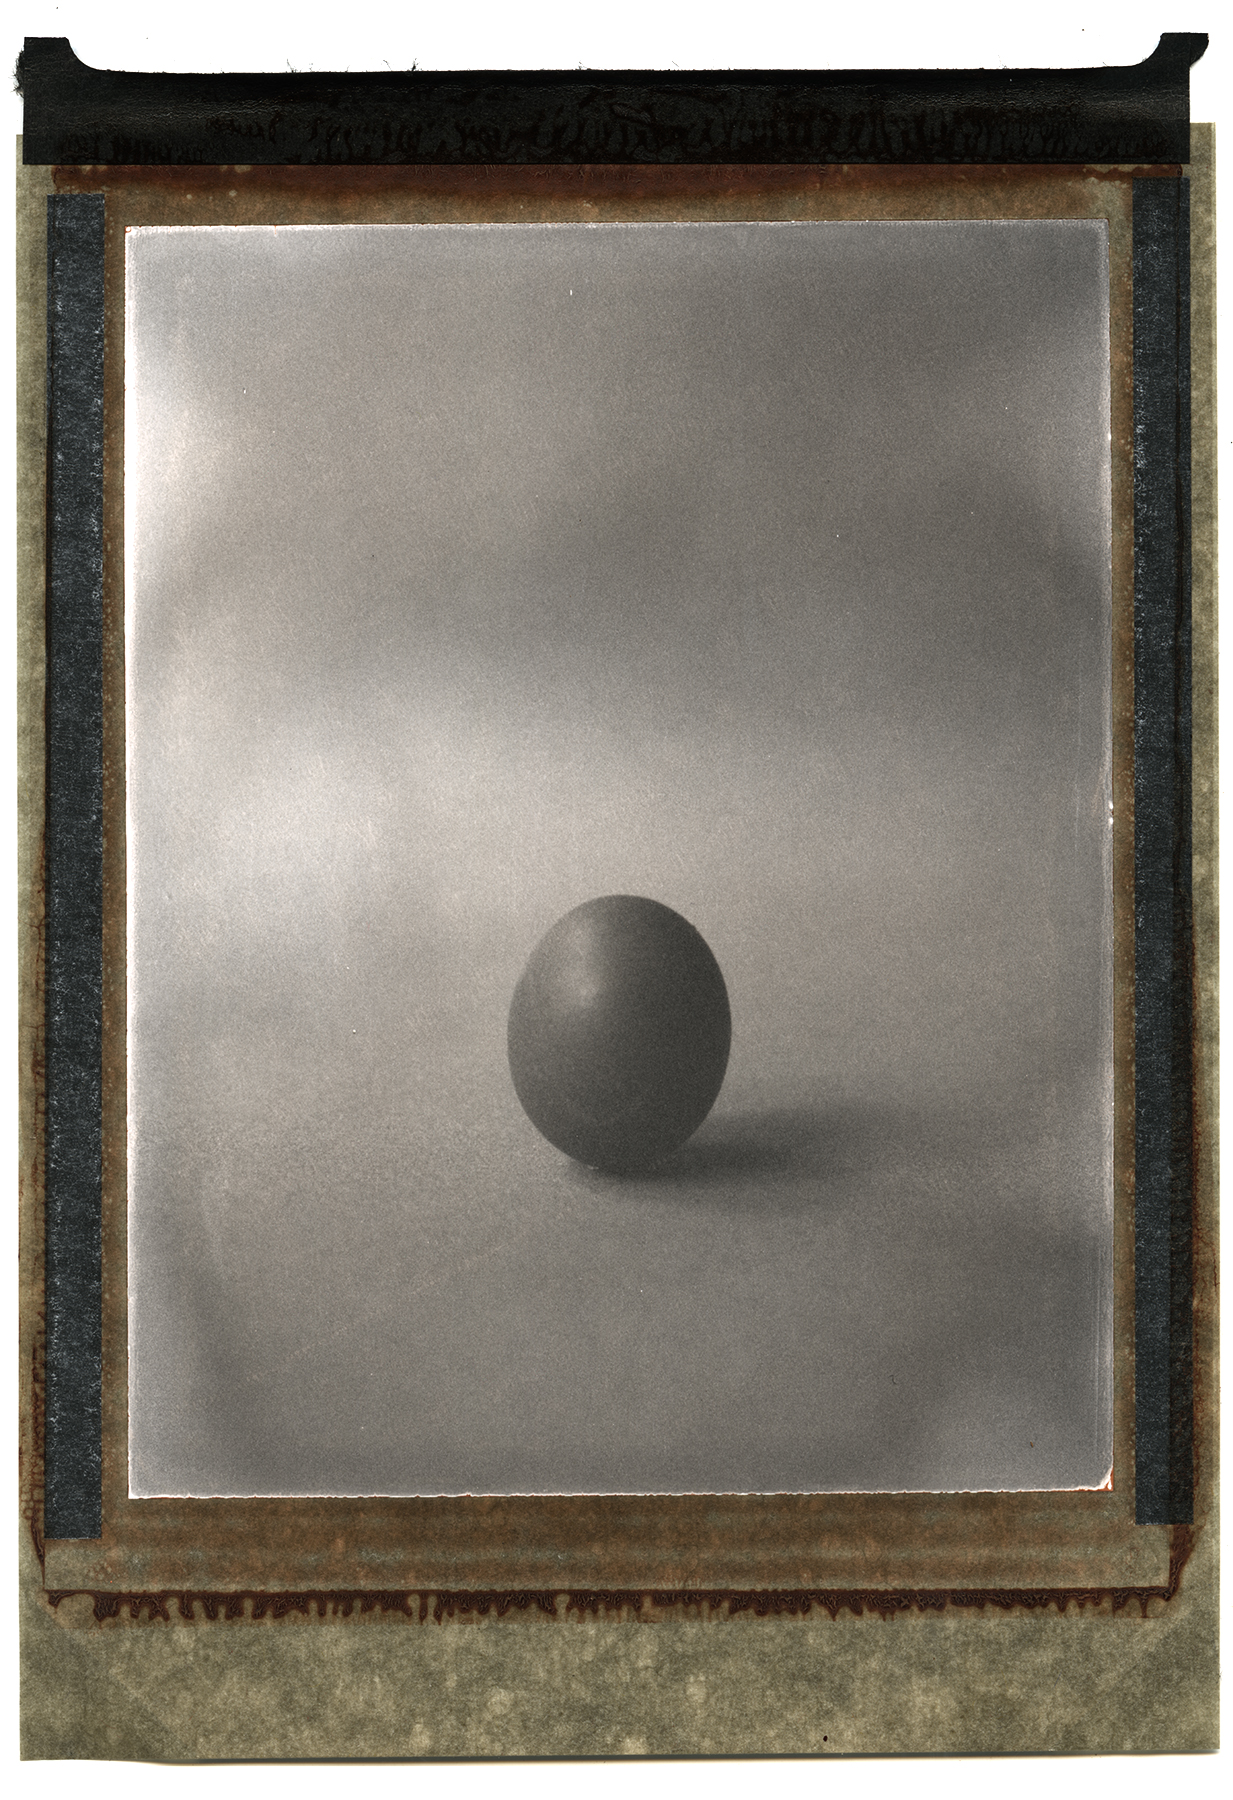 Beyond the Egg | Chamonix 4x5 | Polaroid Type 5 | Davide Maria Ferrari